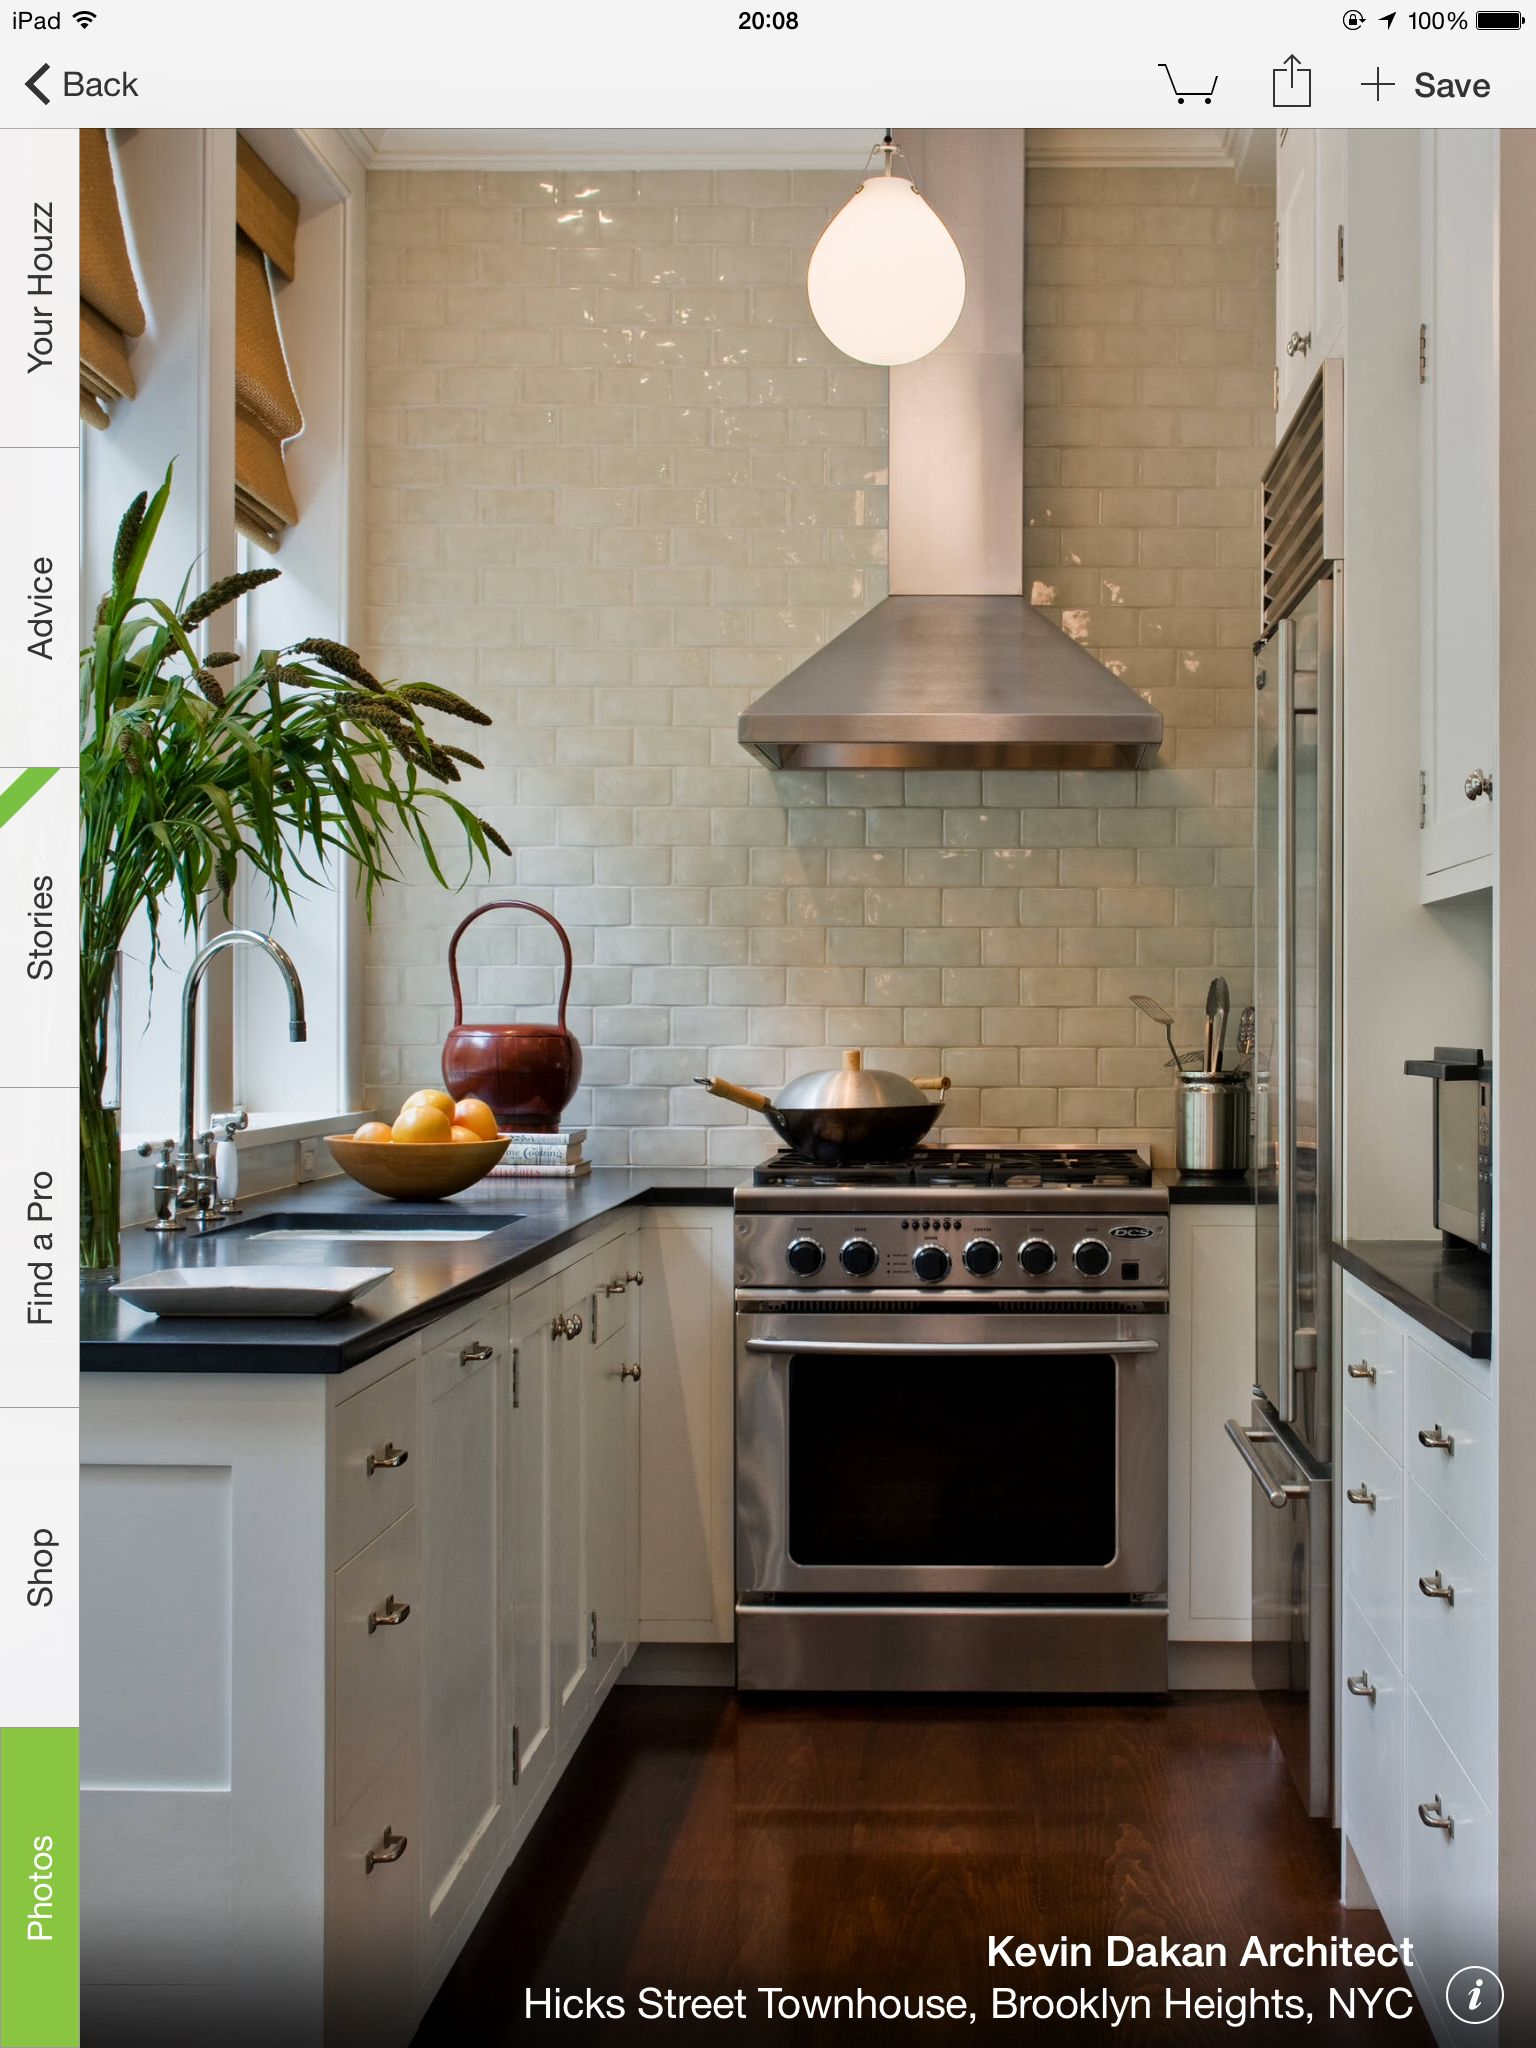 Stove middle of wall Kitchen design small, Kitchen design